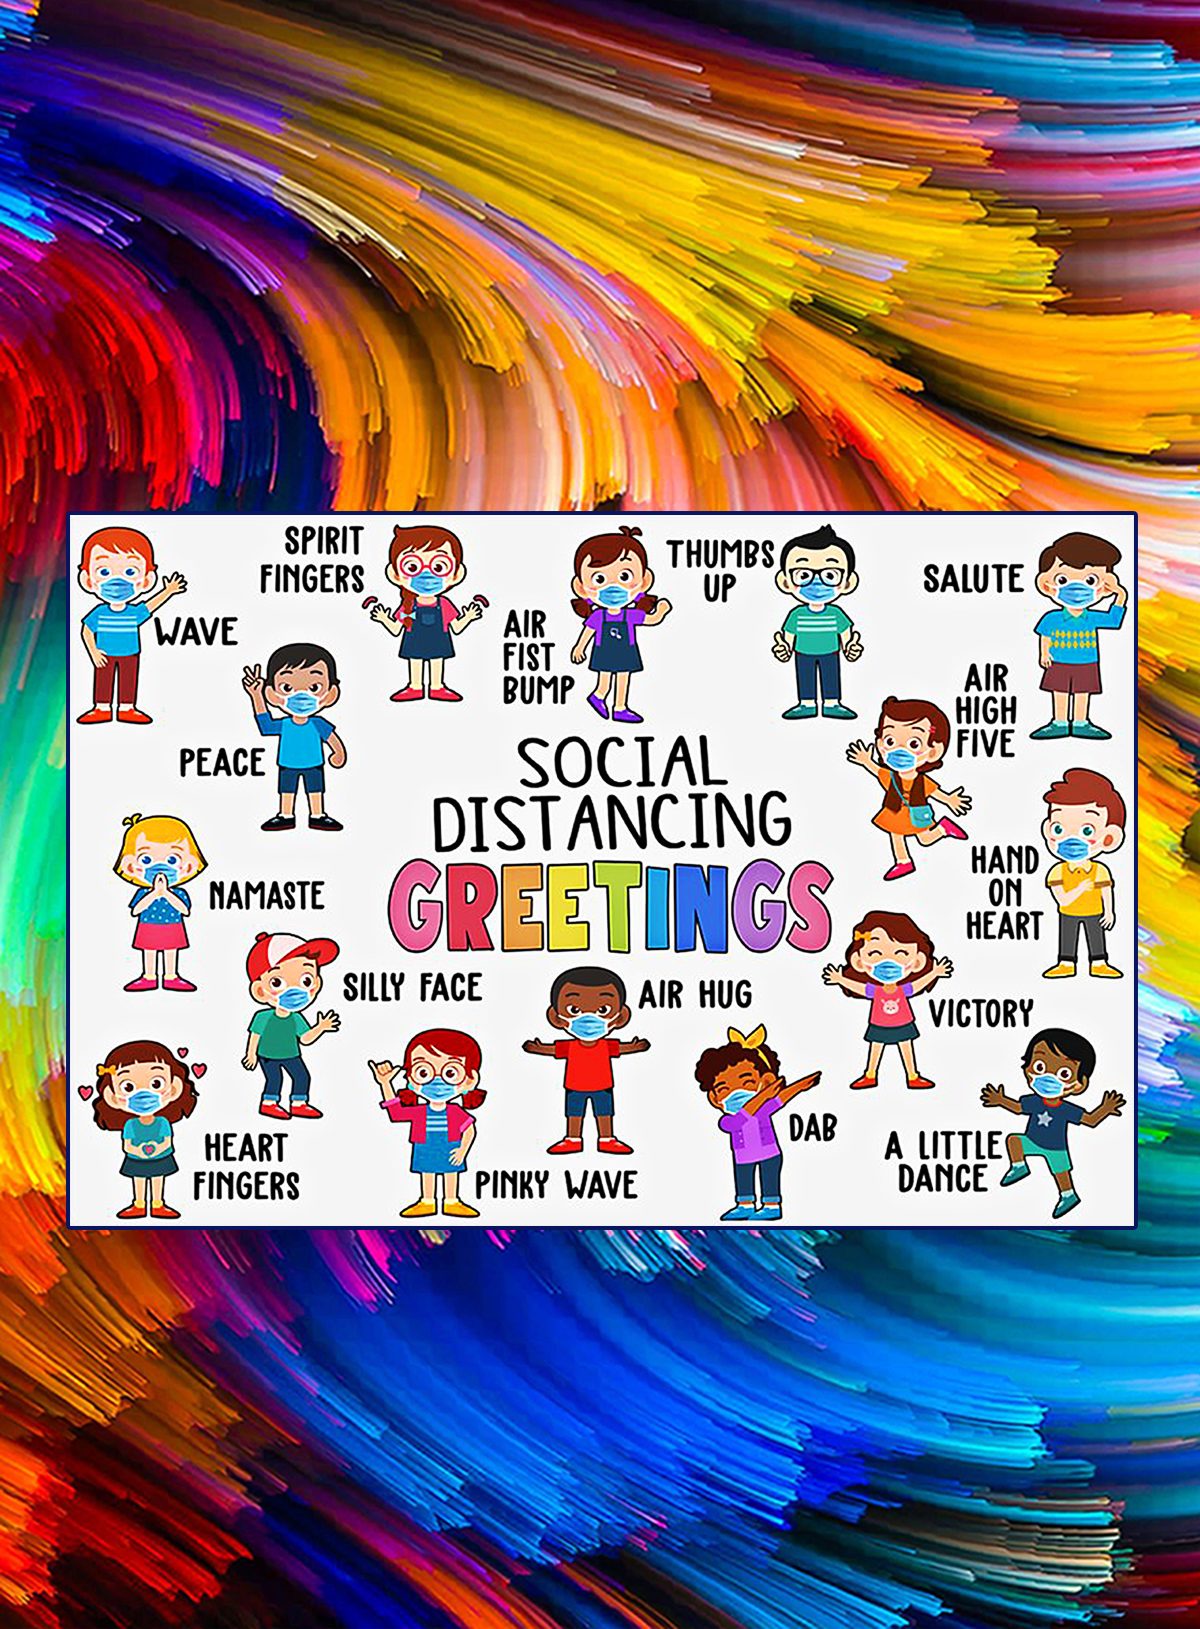 Social distancing greetings classroom poster - A4